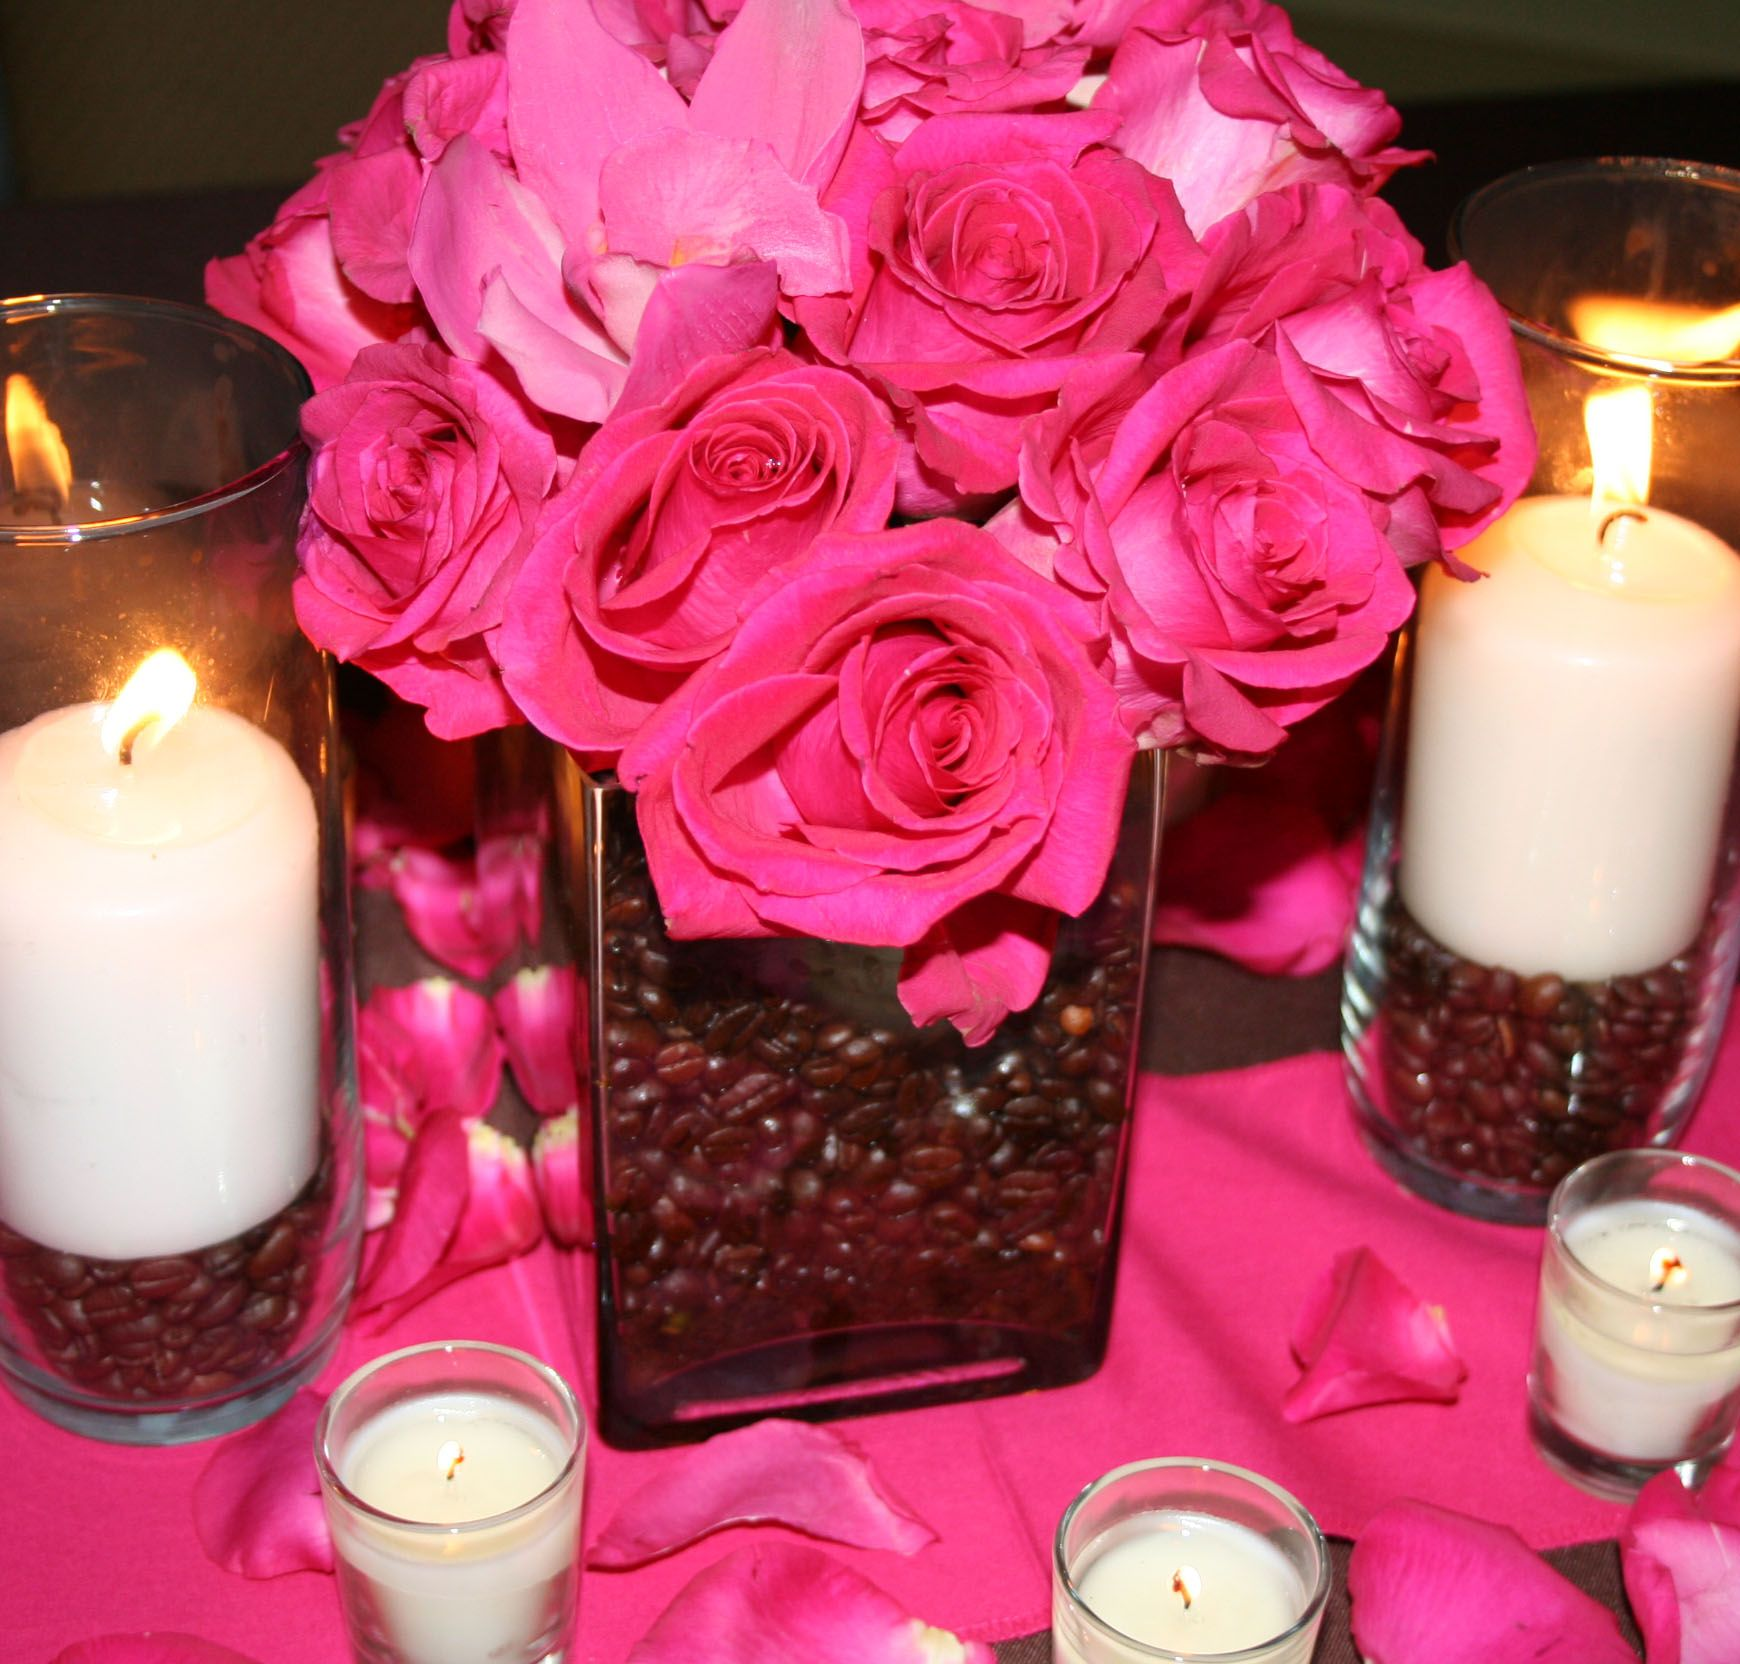 Flowers And Candles Centerpiece Ideas: Very Elegant. Lovbe The Coffee Beans In The Floral Vase